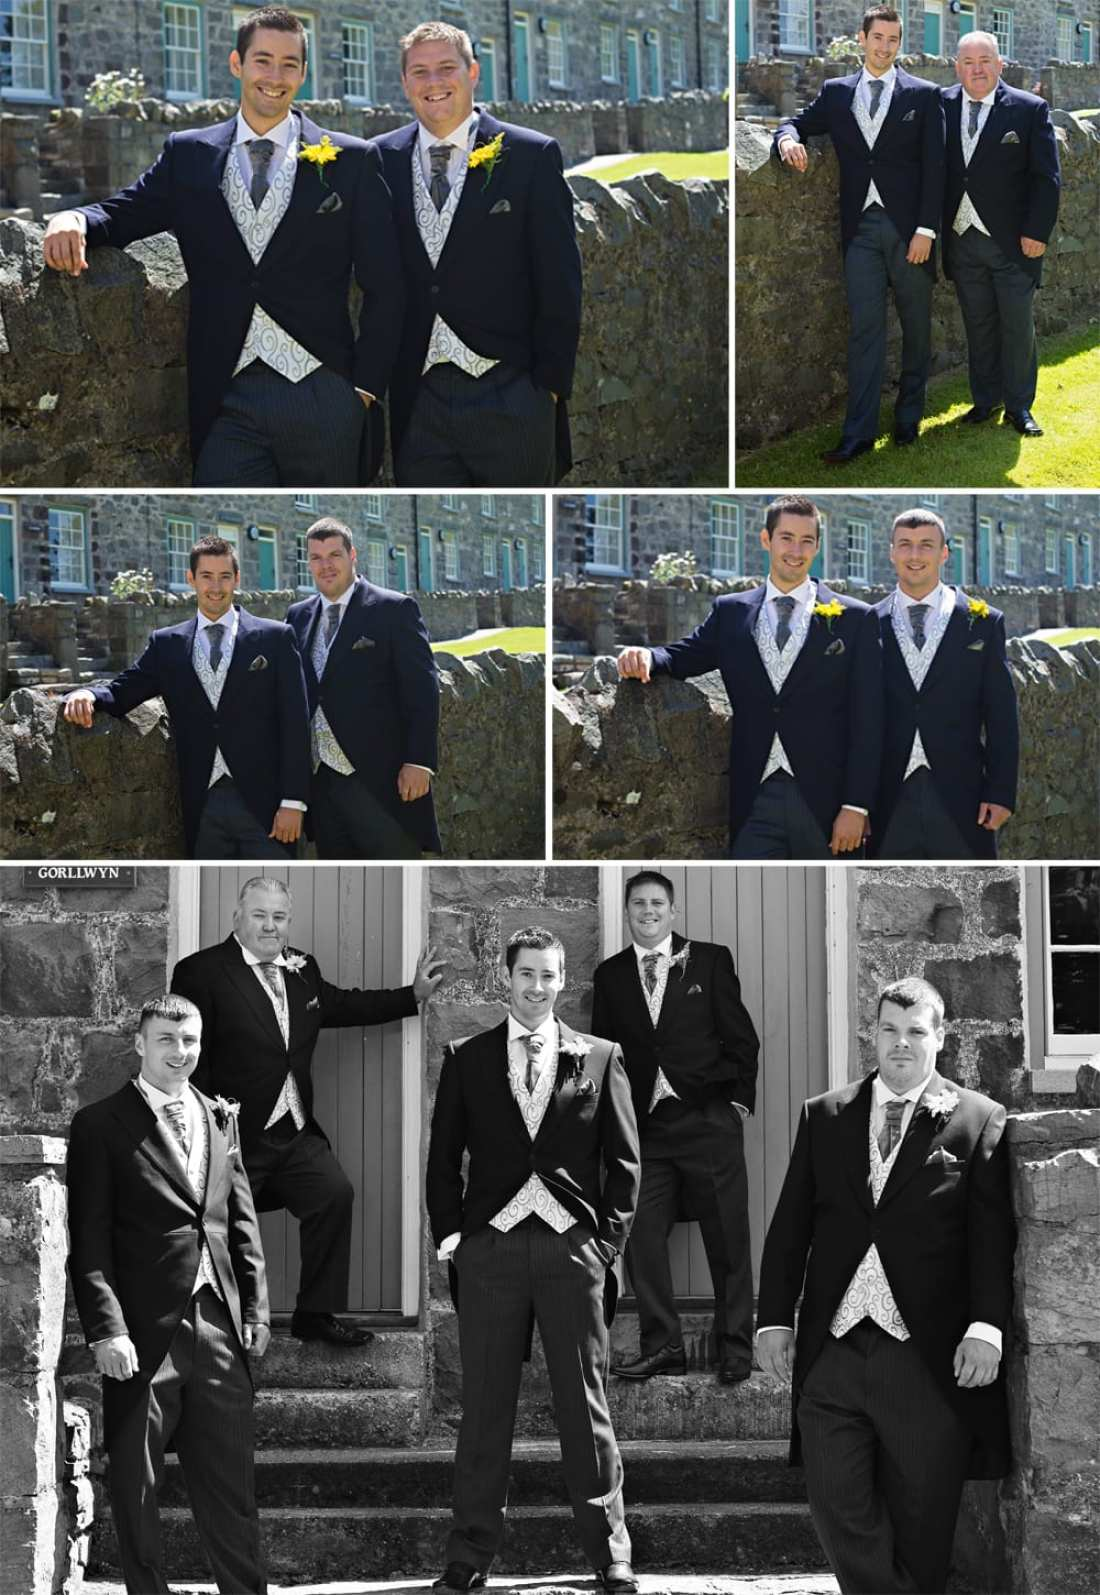 North Wales wedding - guys in morning suits